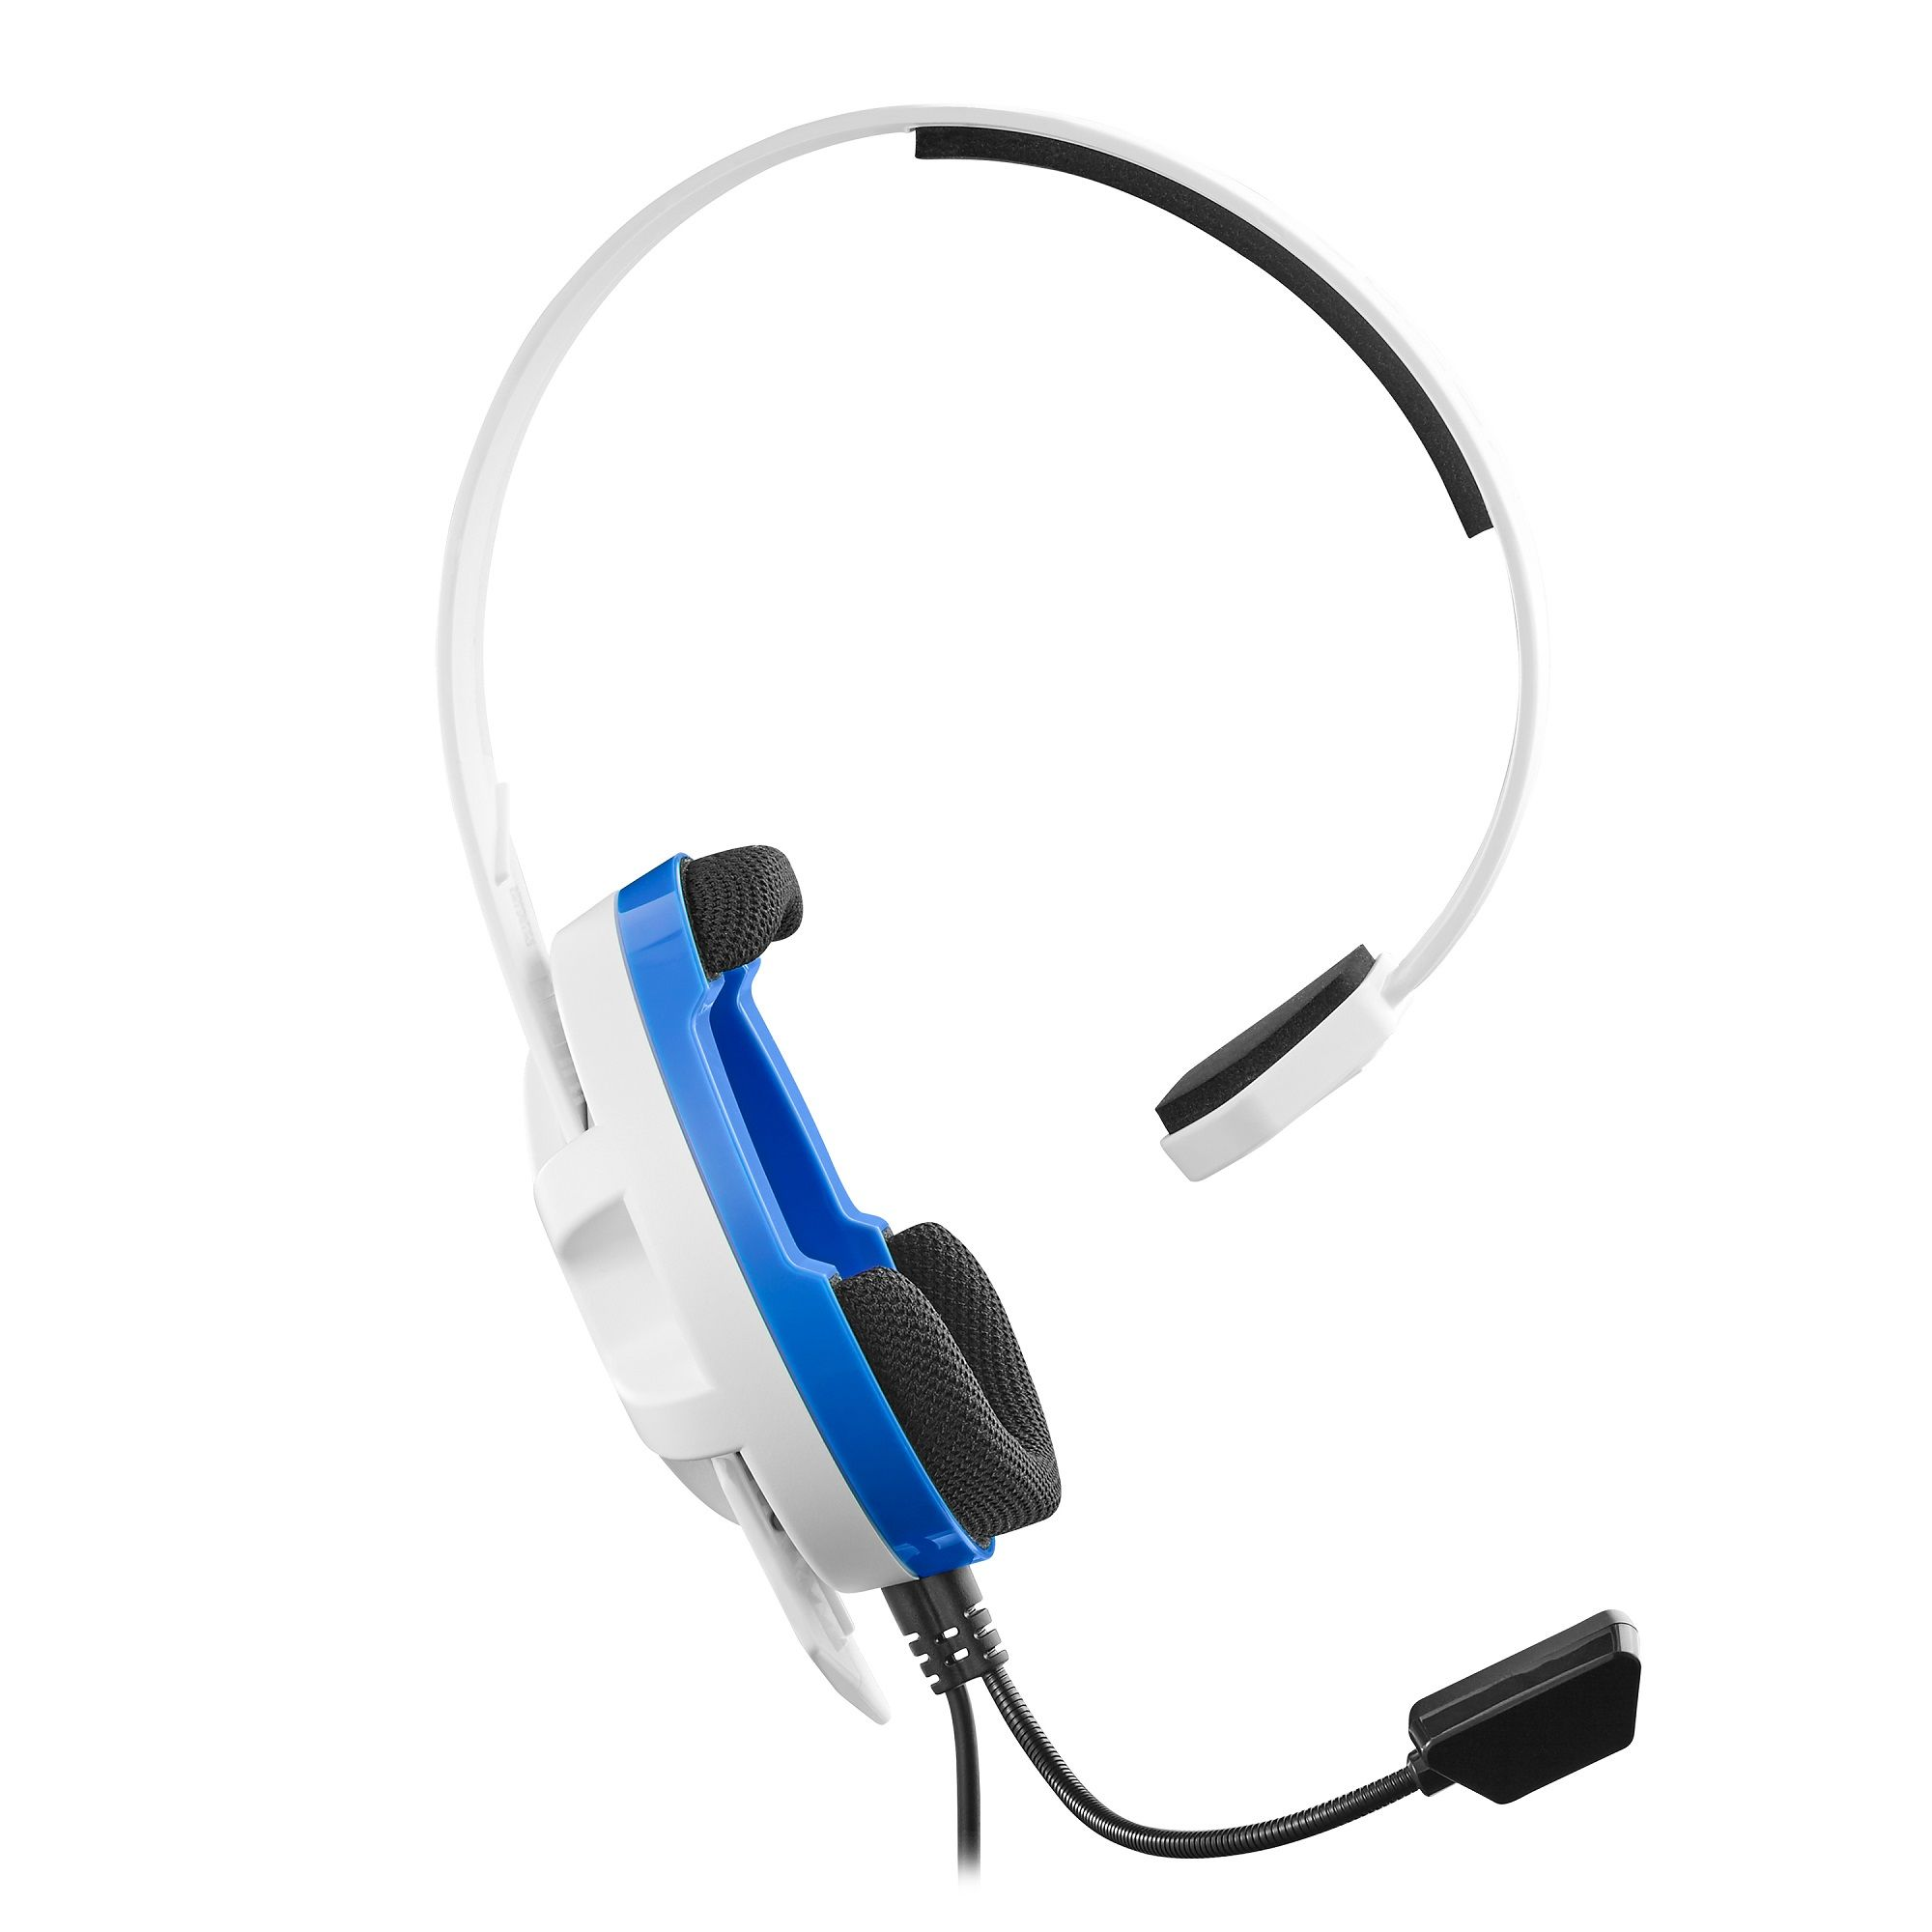 Turtle Beach Ear Force Recon Ps4 Chat Wired White Ear Force Turtle Turtle Beach Gaming Headset Ps4 Headset